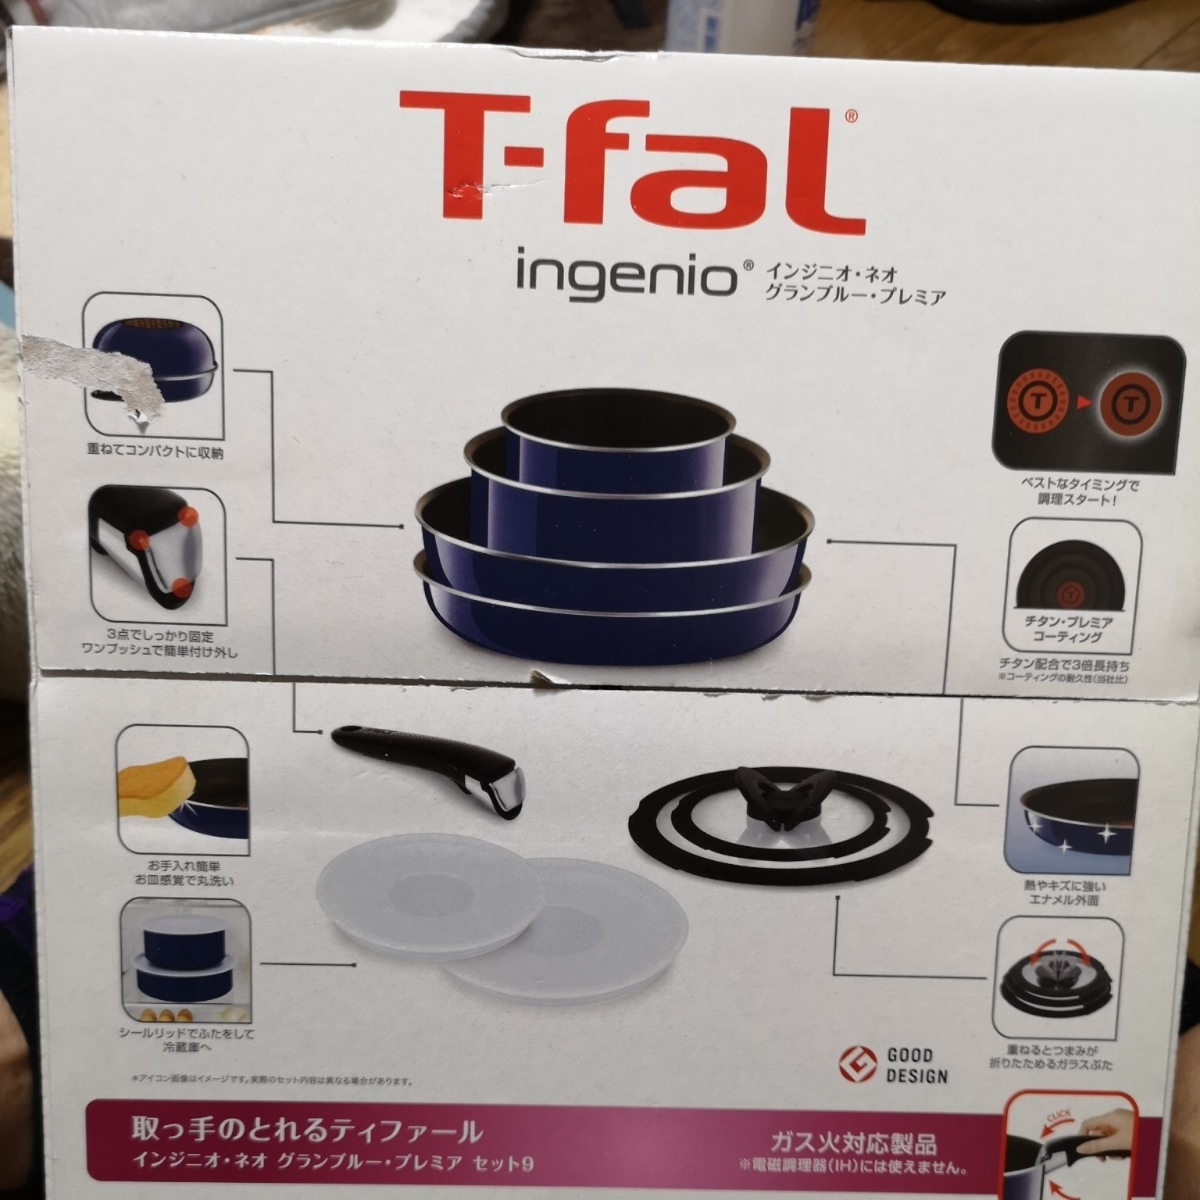 T-faL フライパン9点セット ひとり暮らし応援 ガス火 IH不可 新品未使用品 箱に傷小 持ち手+1本付き_画像2